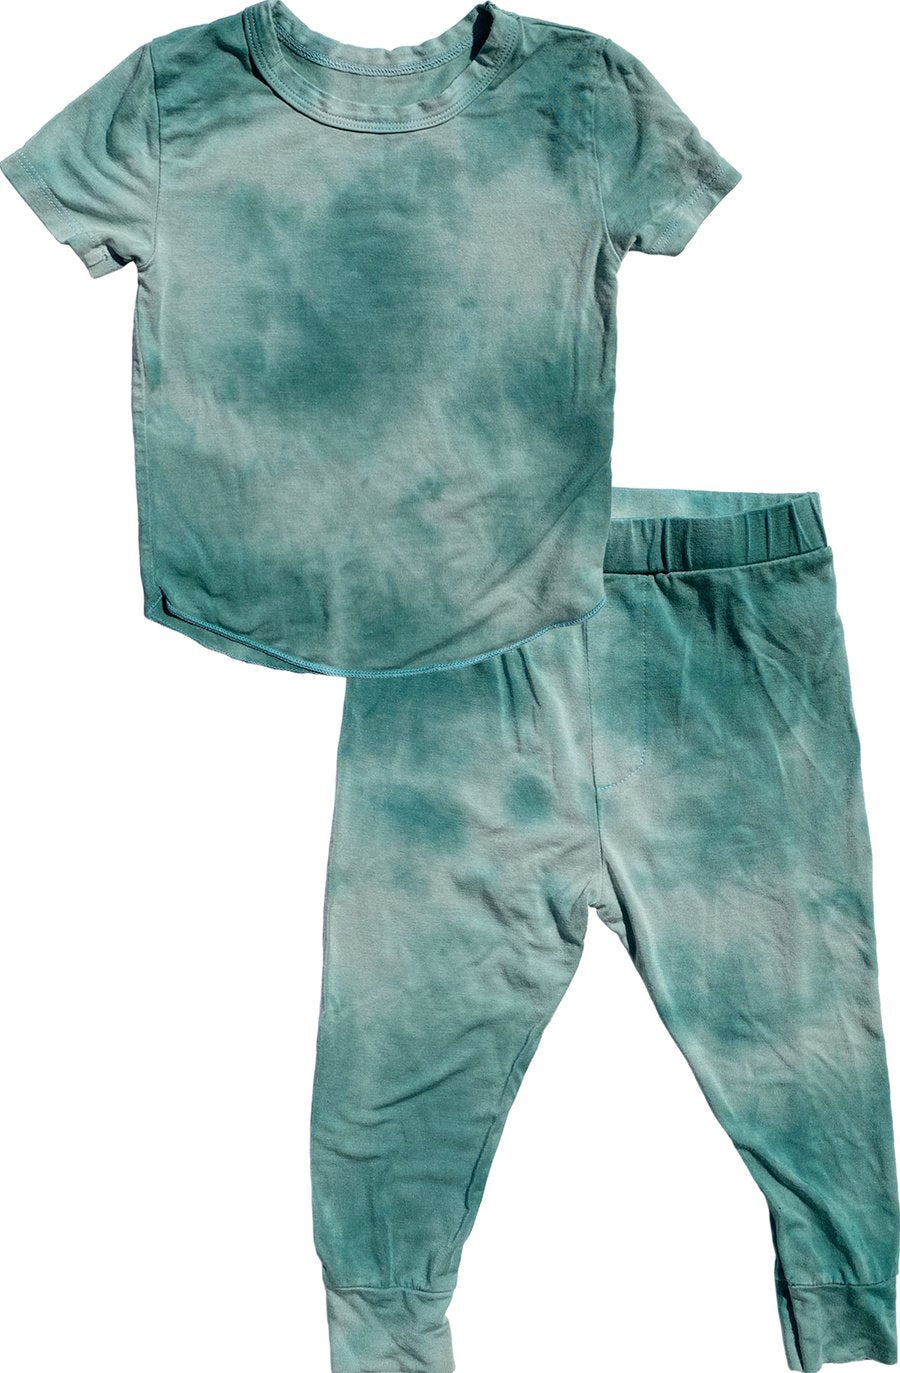 Rowdy Sprout Rebel Tie Dye Bamboo Pajama Set - Green